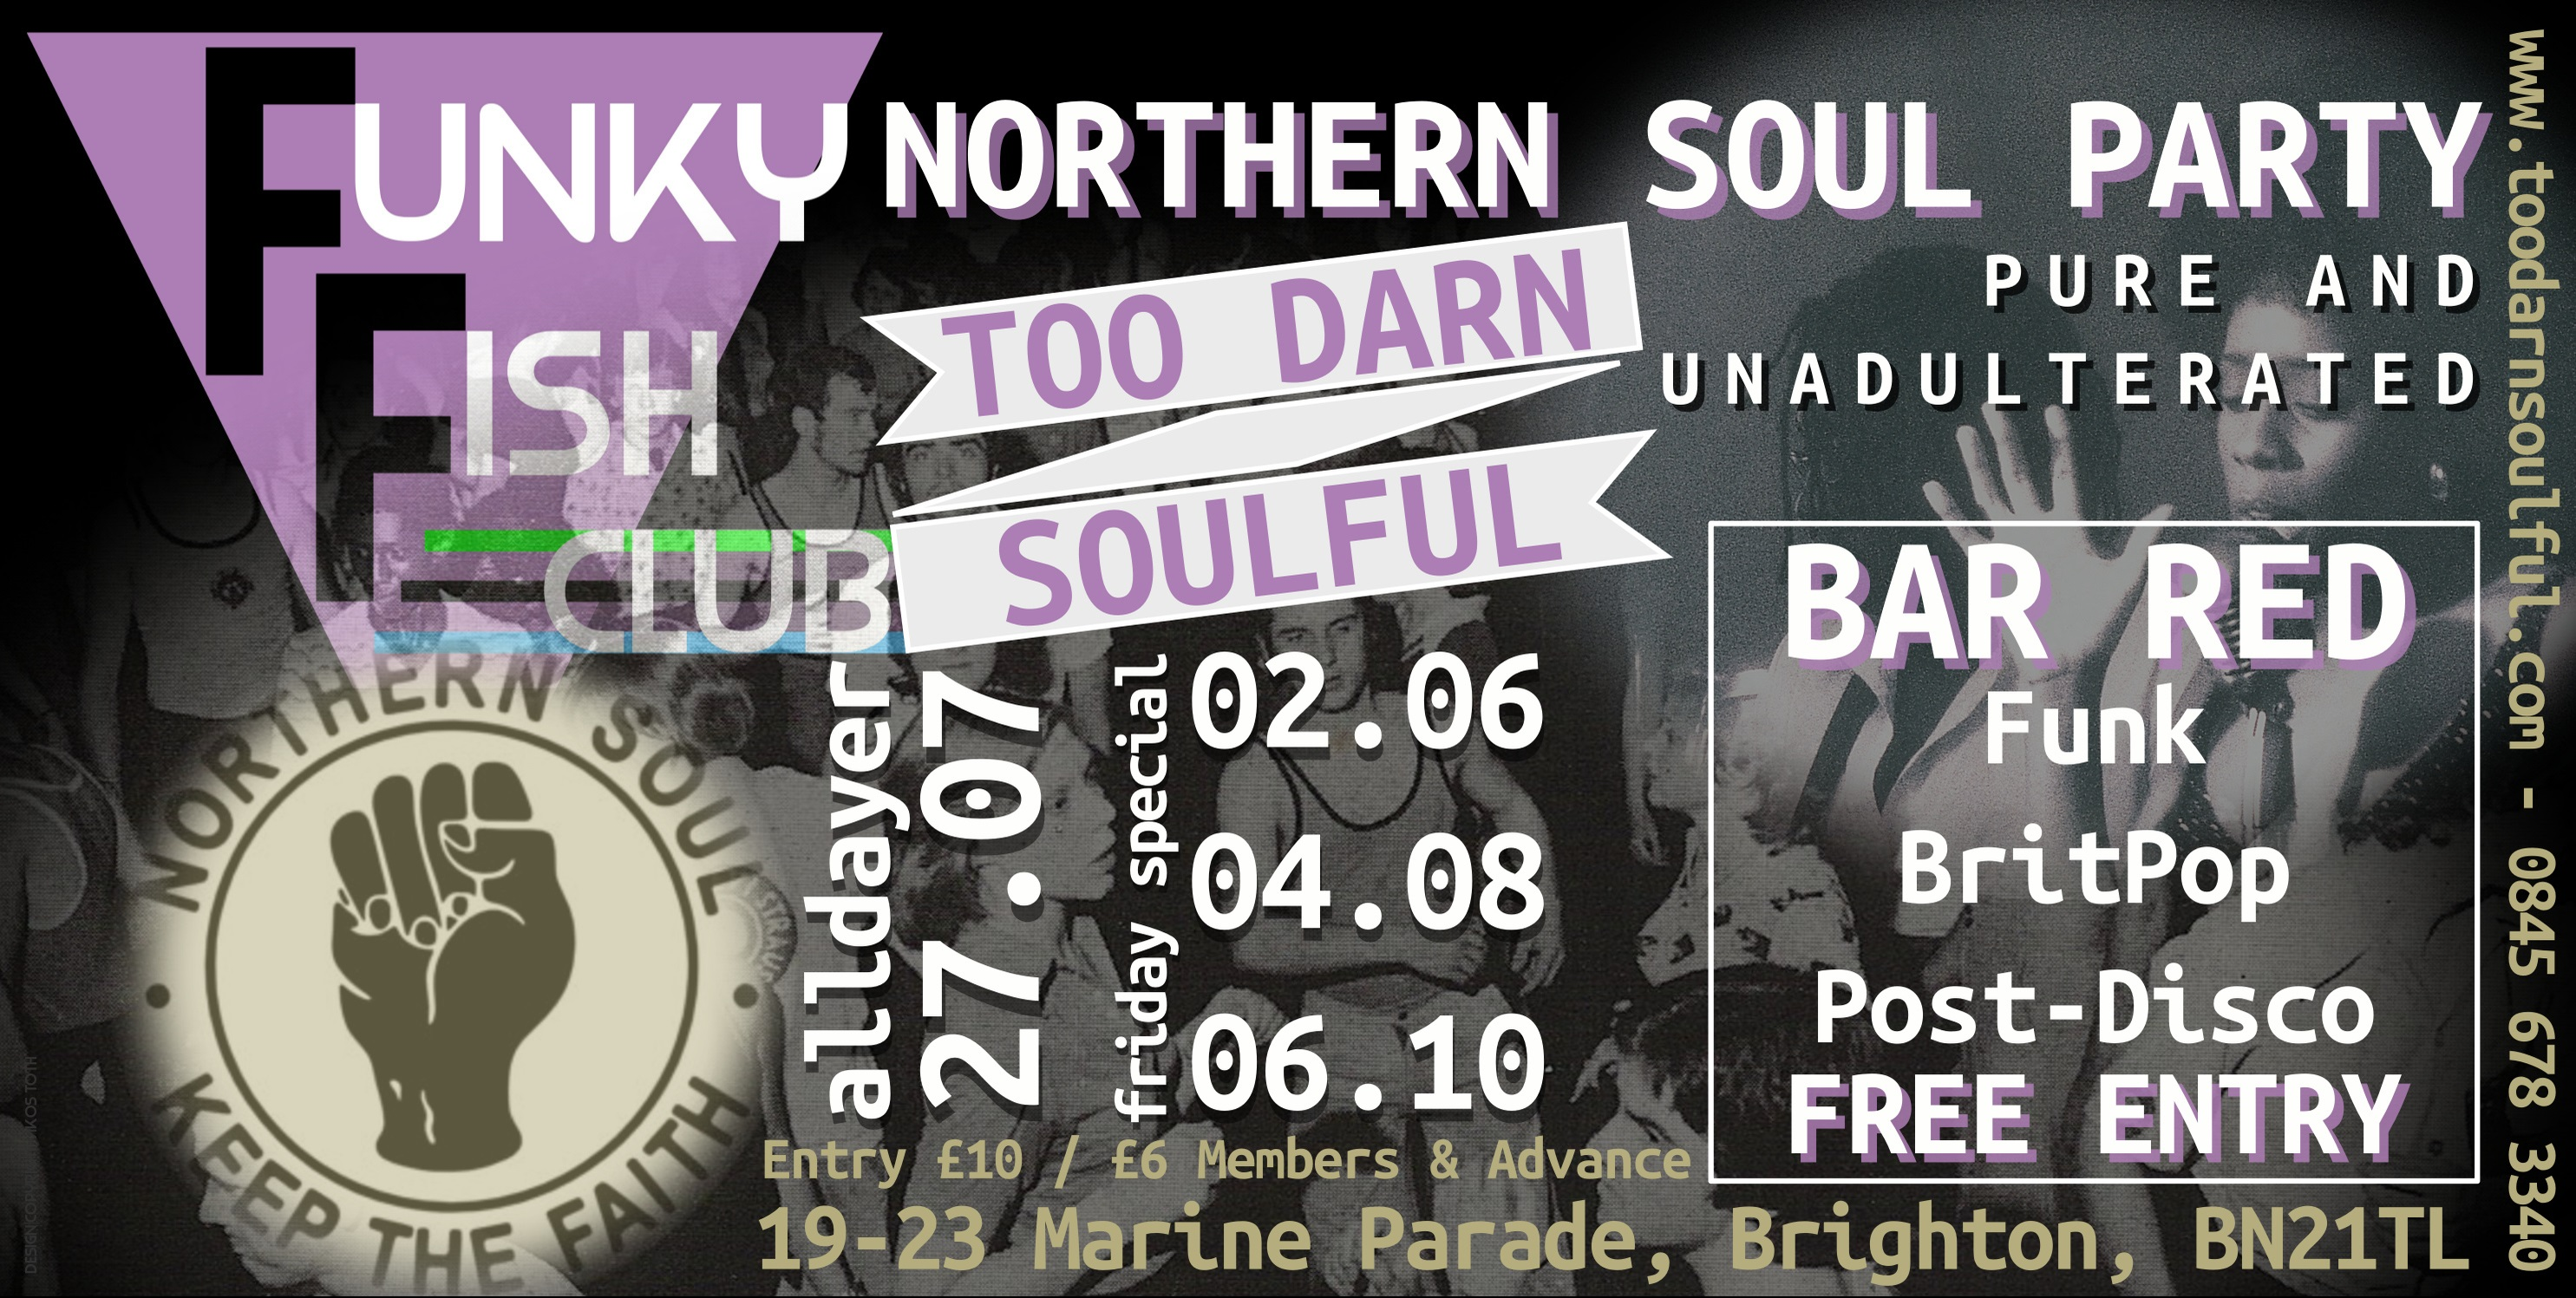 FRIDAY 2nd JUNE - NORTHERN SOUL